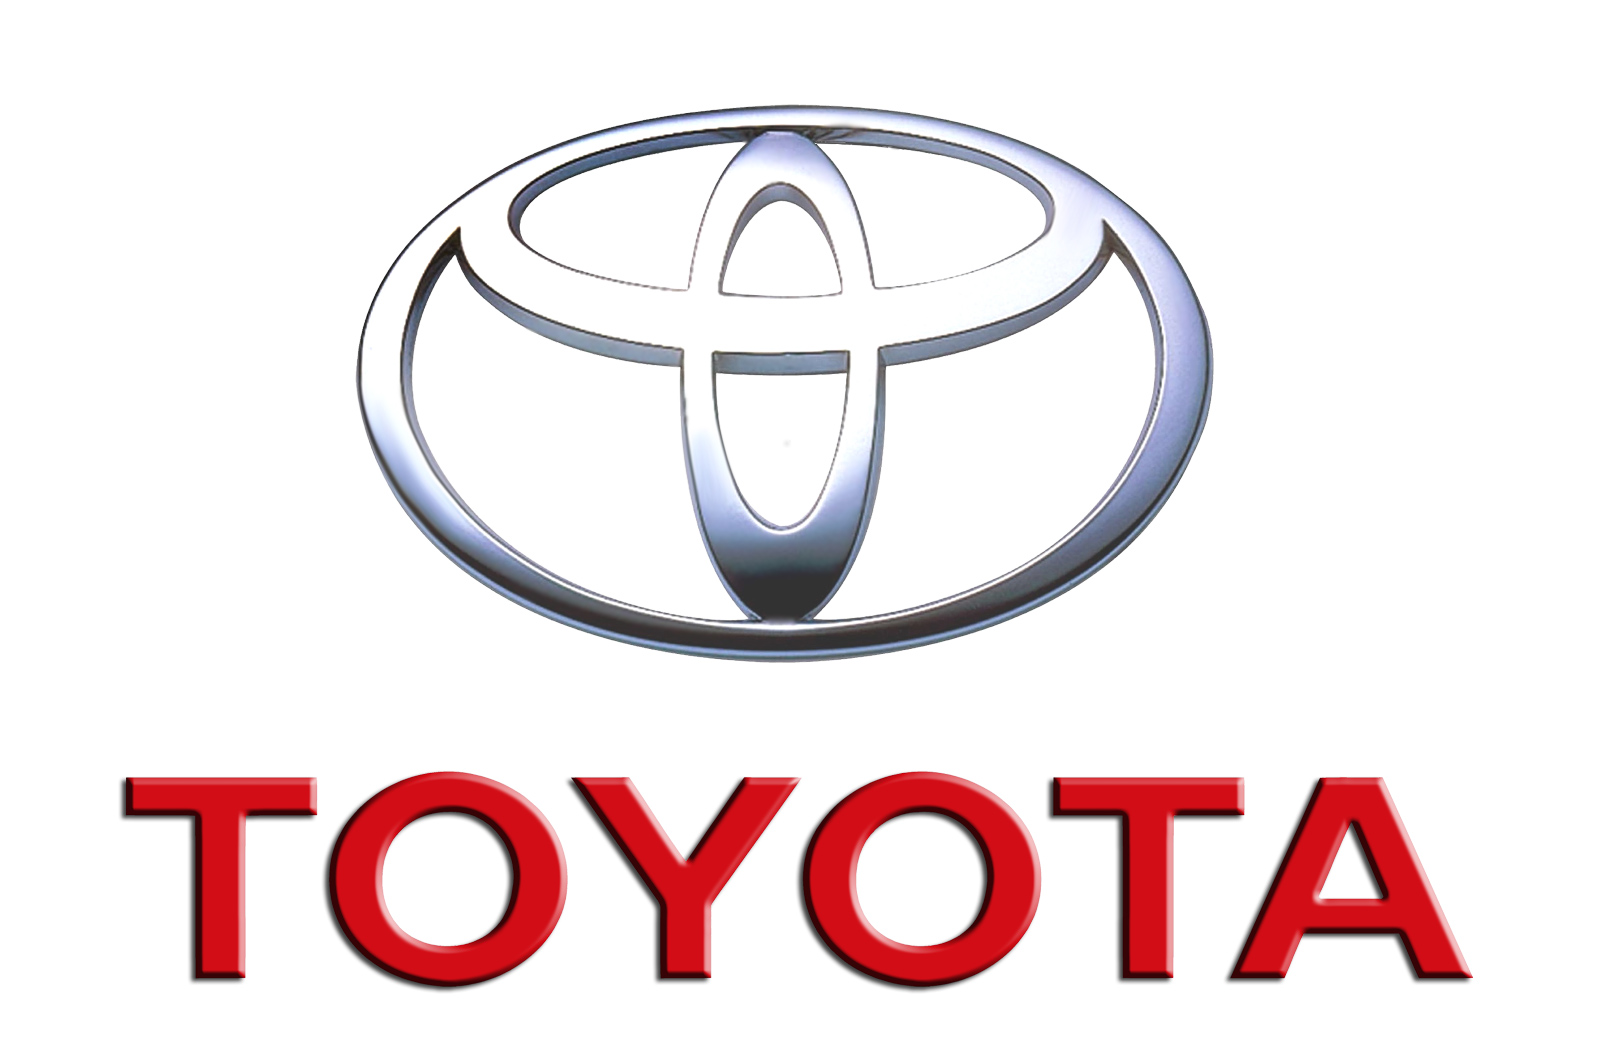 Toyota's Top 5 Moments from 2014